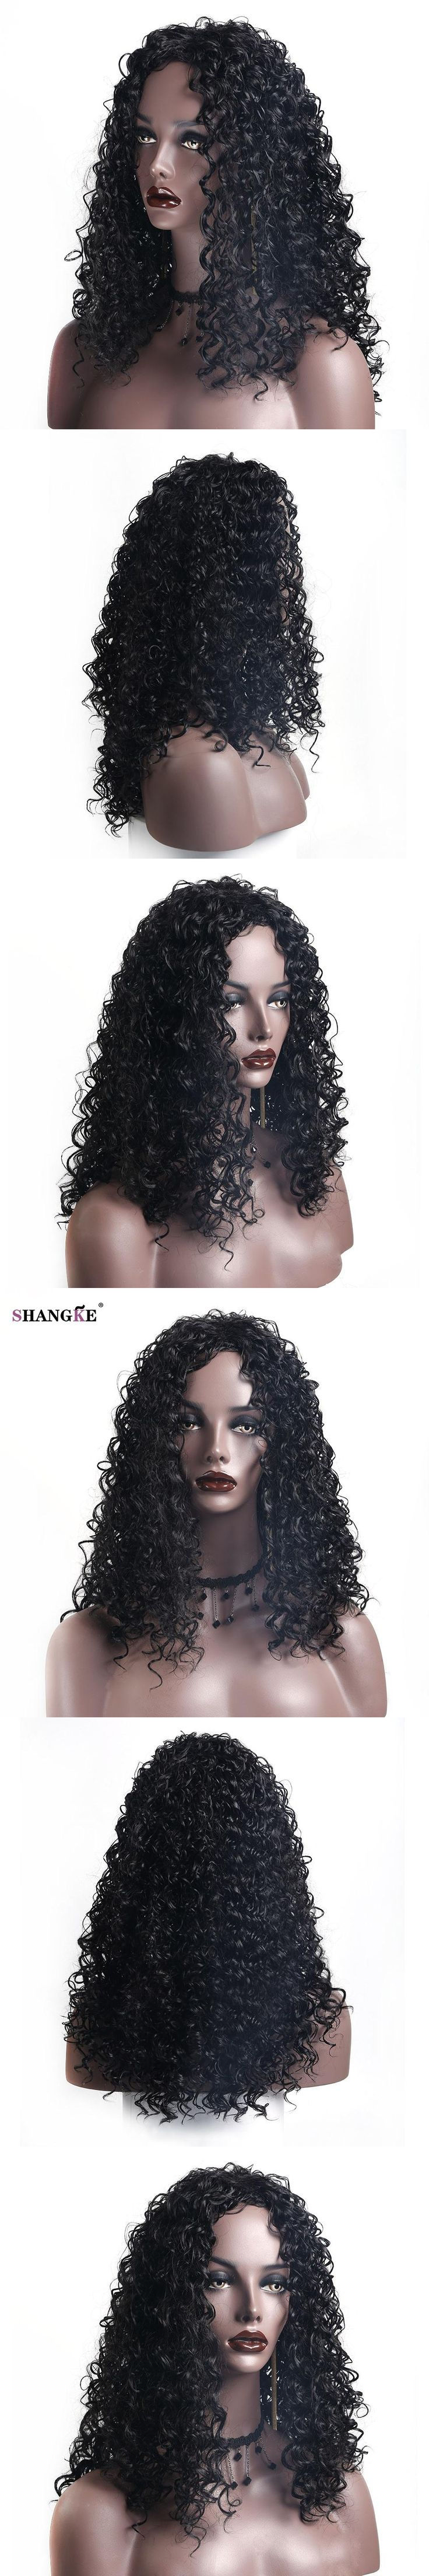 Best 25 Short curly afro ideas on Pinterest  Curly afro